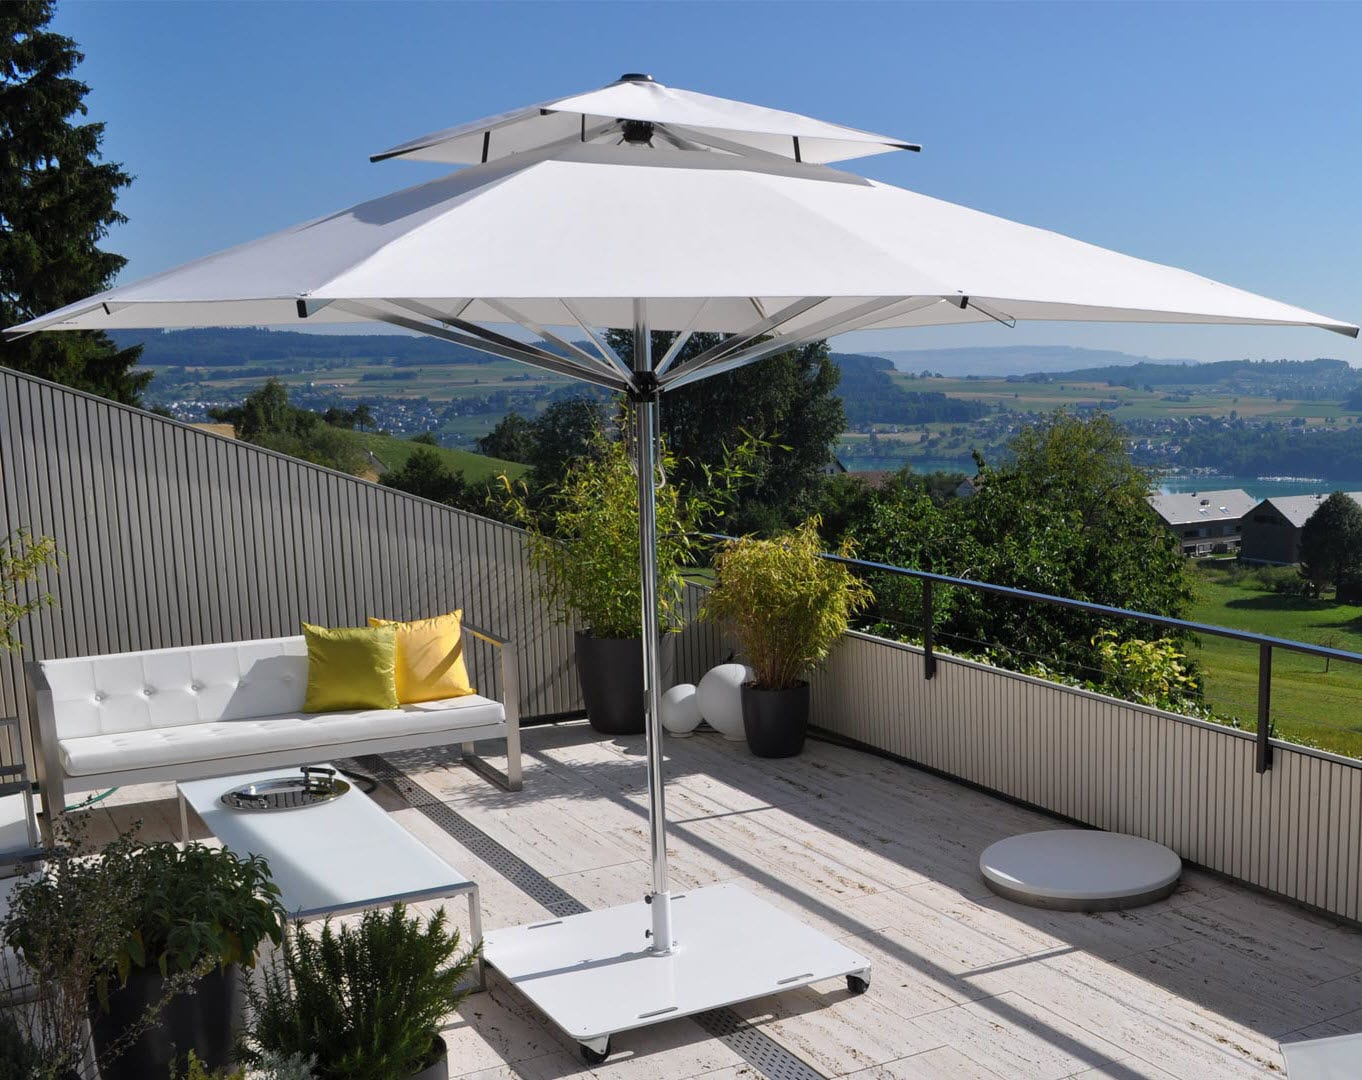 Commercial Patio Umbrella For Hotels Bars Public Pools Supremo